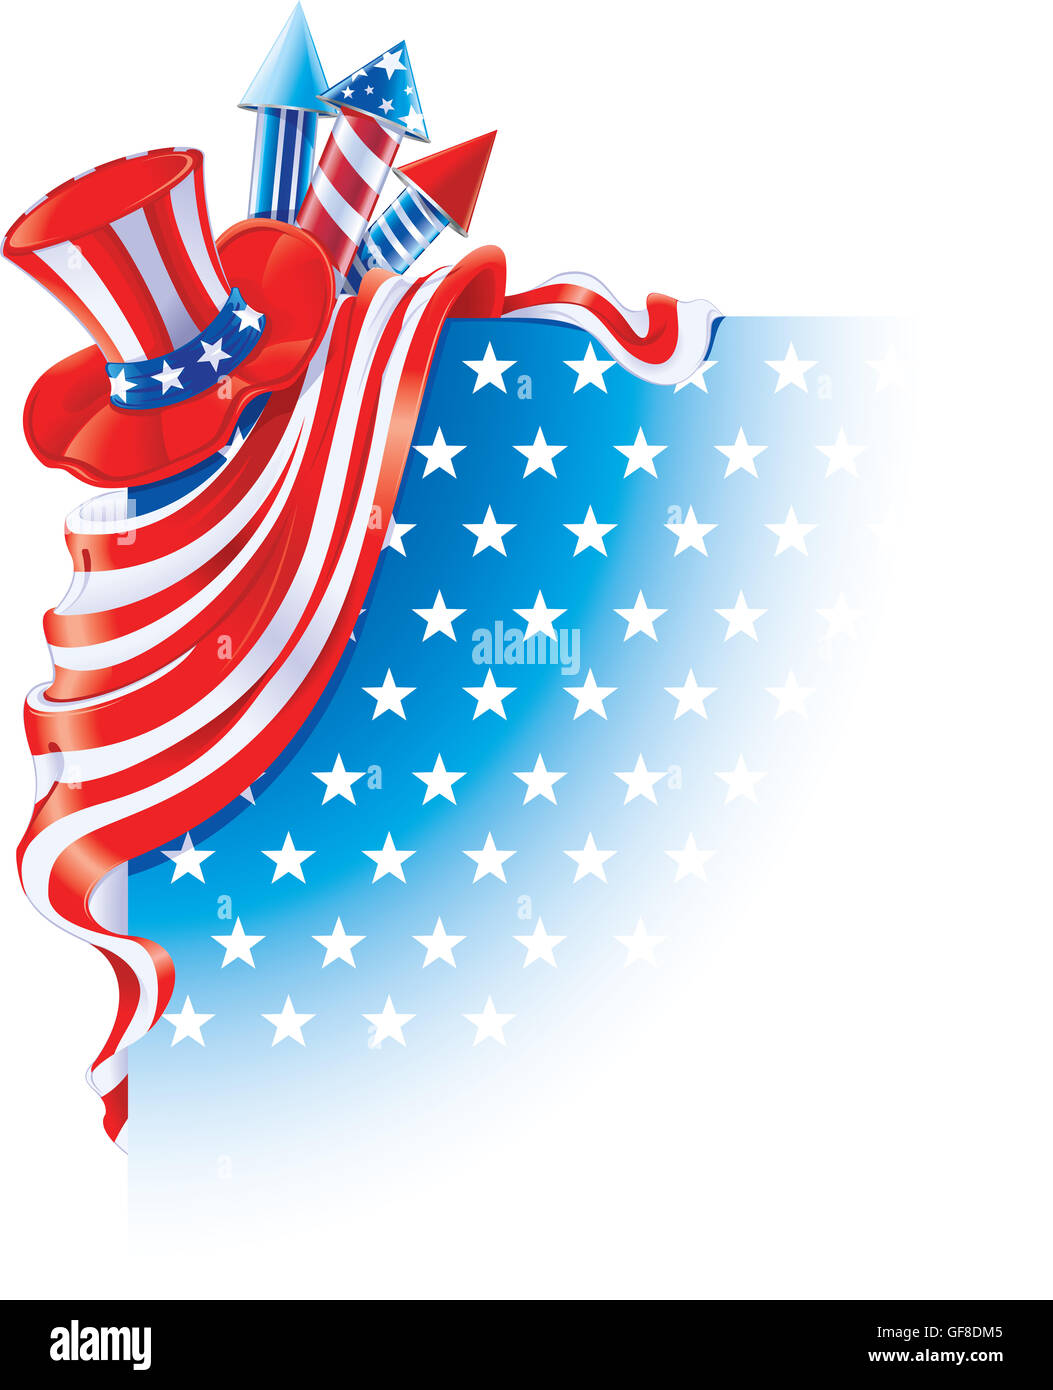 Fourth of July background - Stock Image